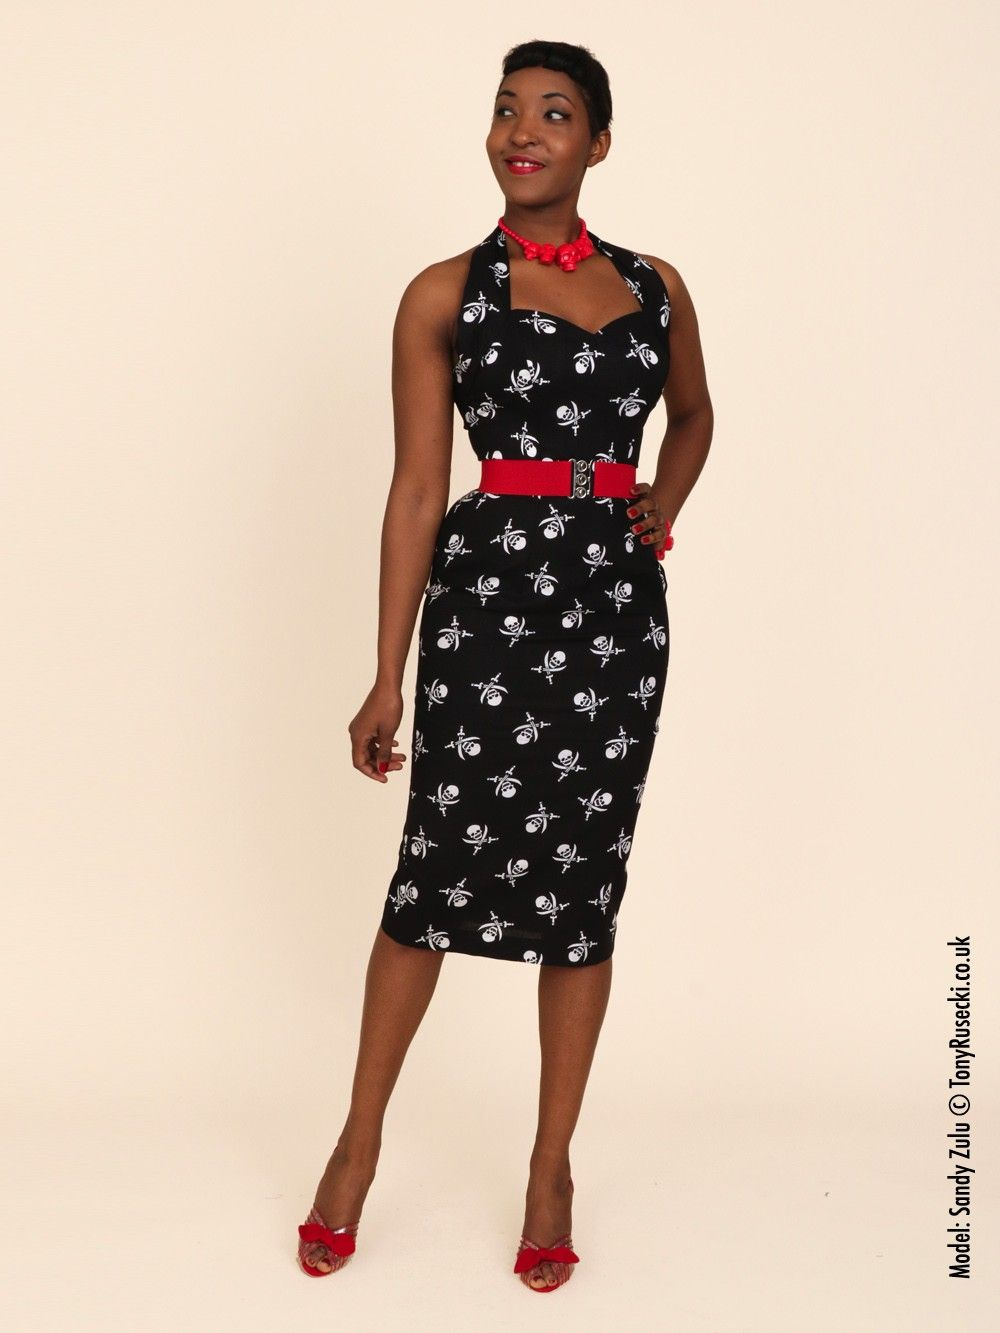 95b79a80a91b7 1950s Halterneck Pencil Pirate Dress from Vivien of Holloway ...